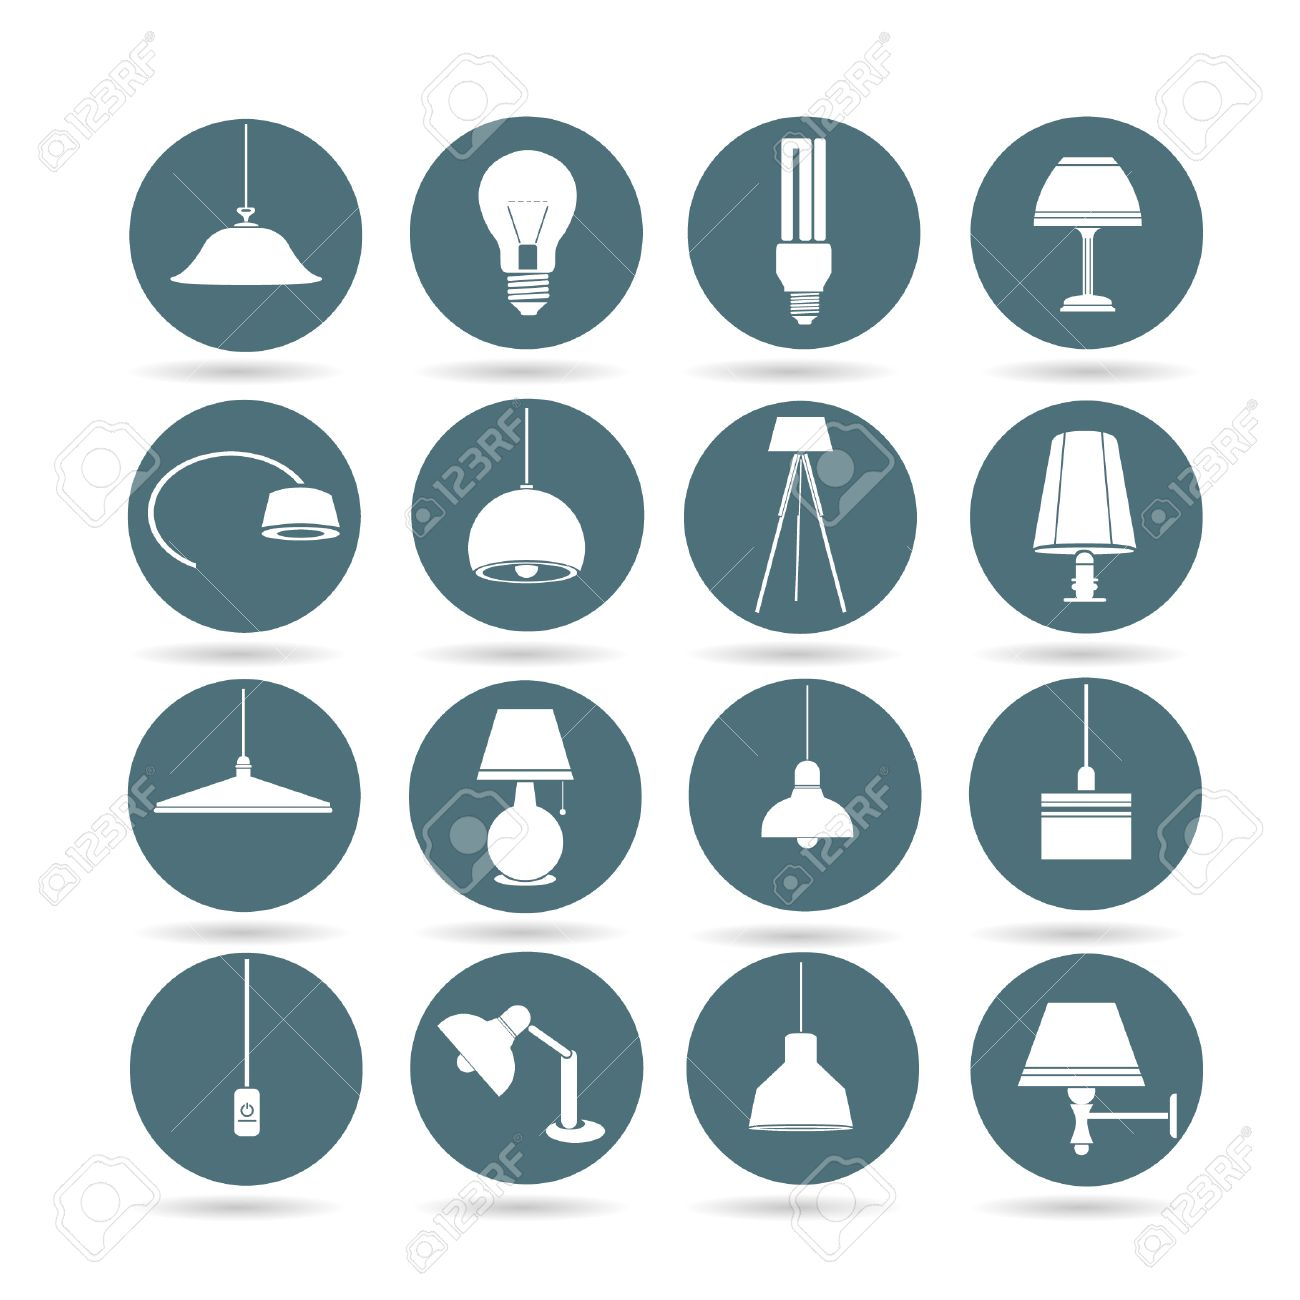 Lamp Icons Interior Design Buttons App Buttons Set Royalty Free